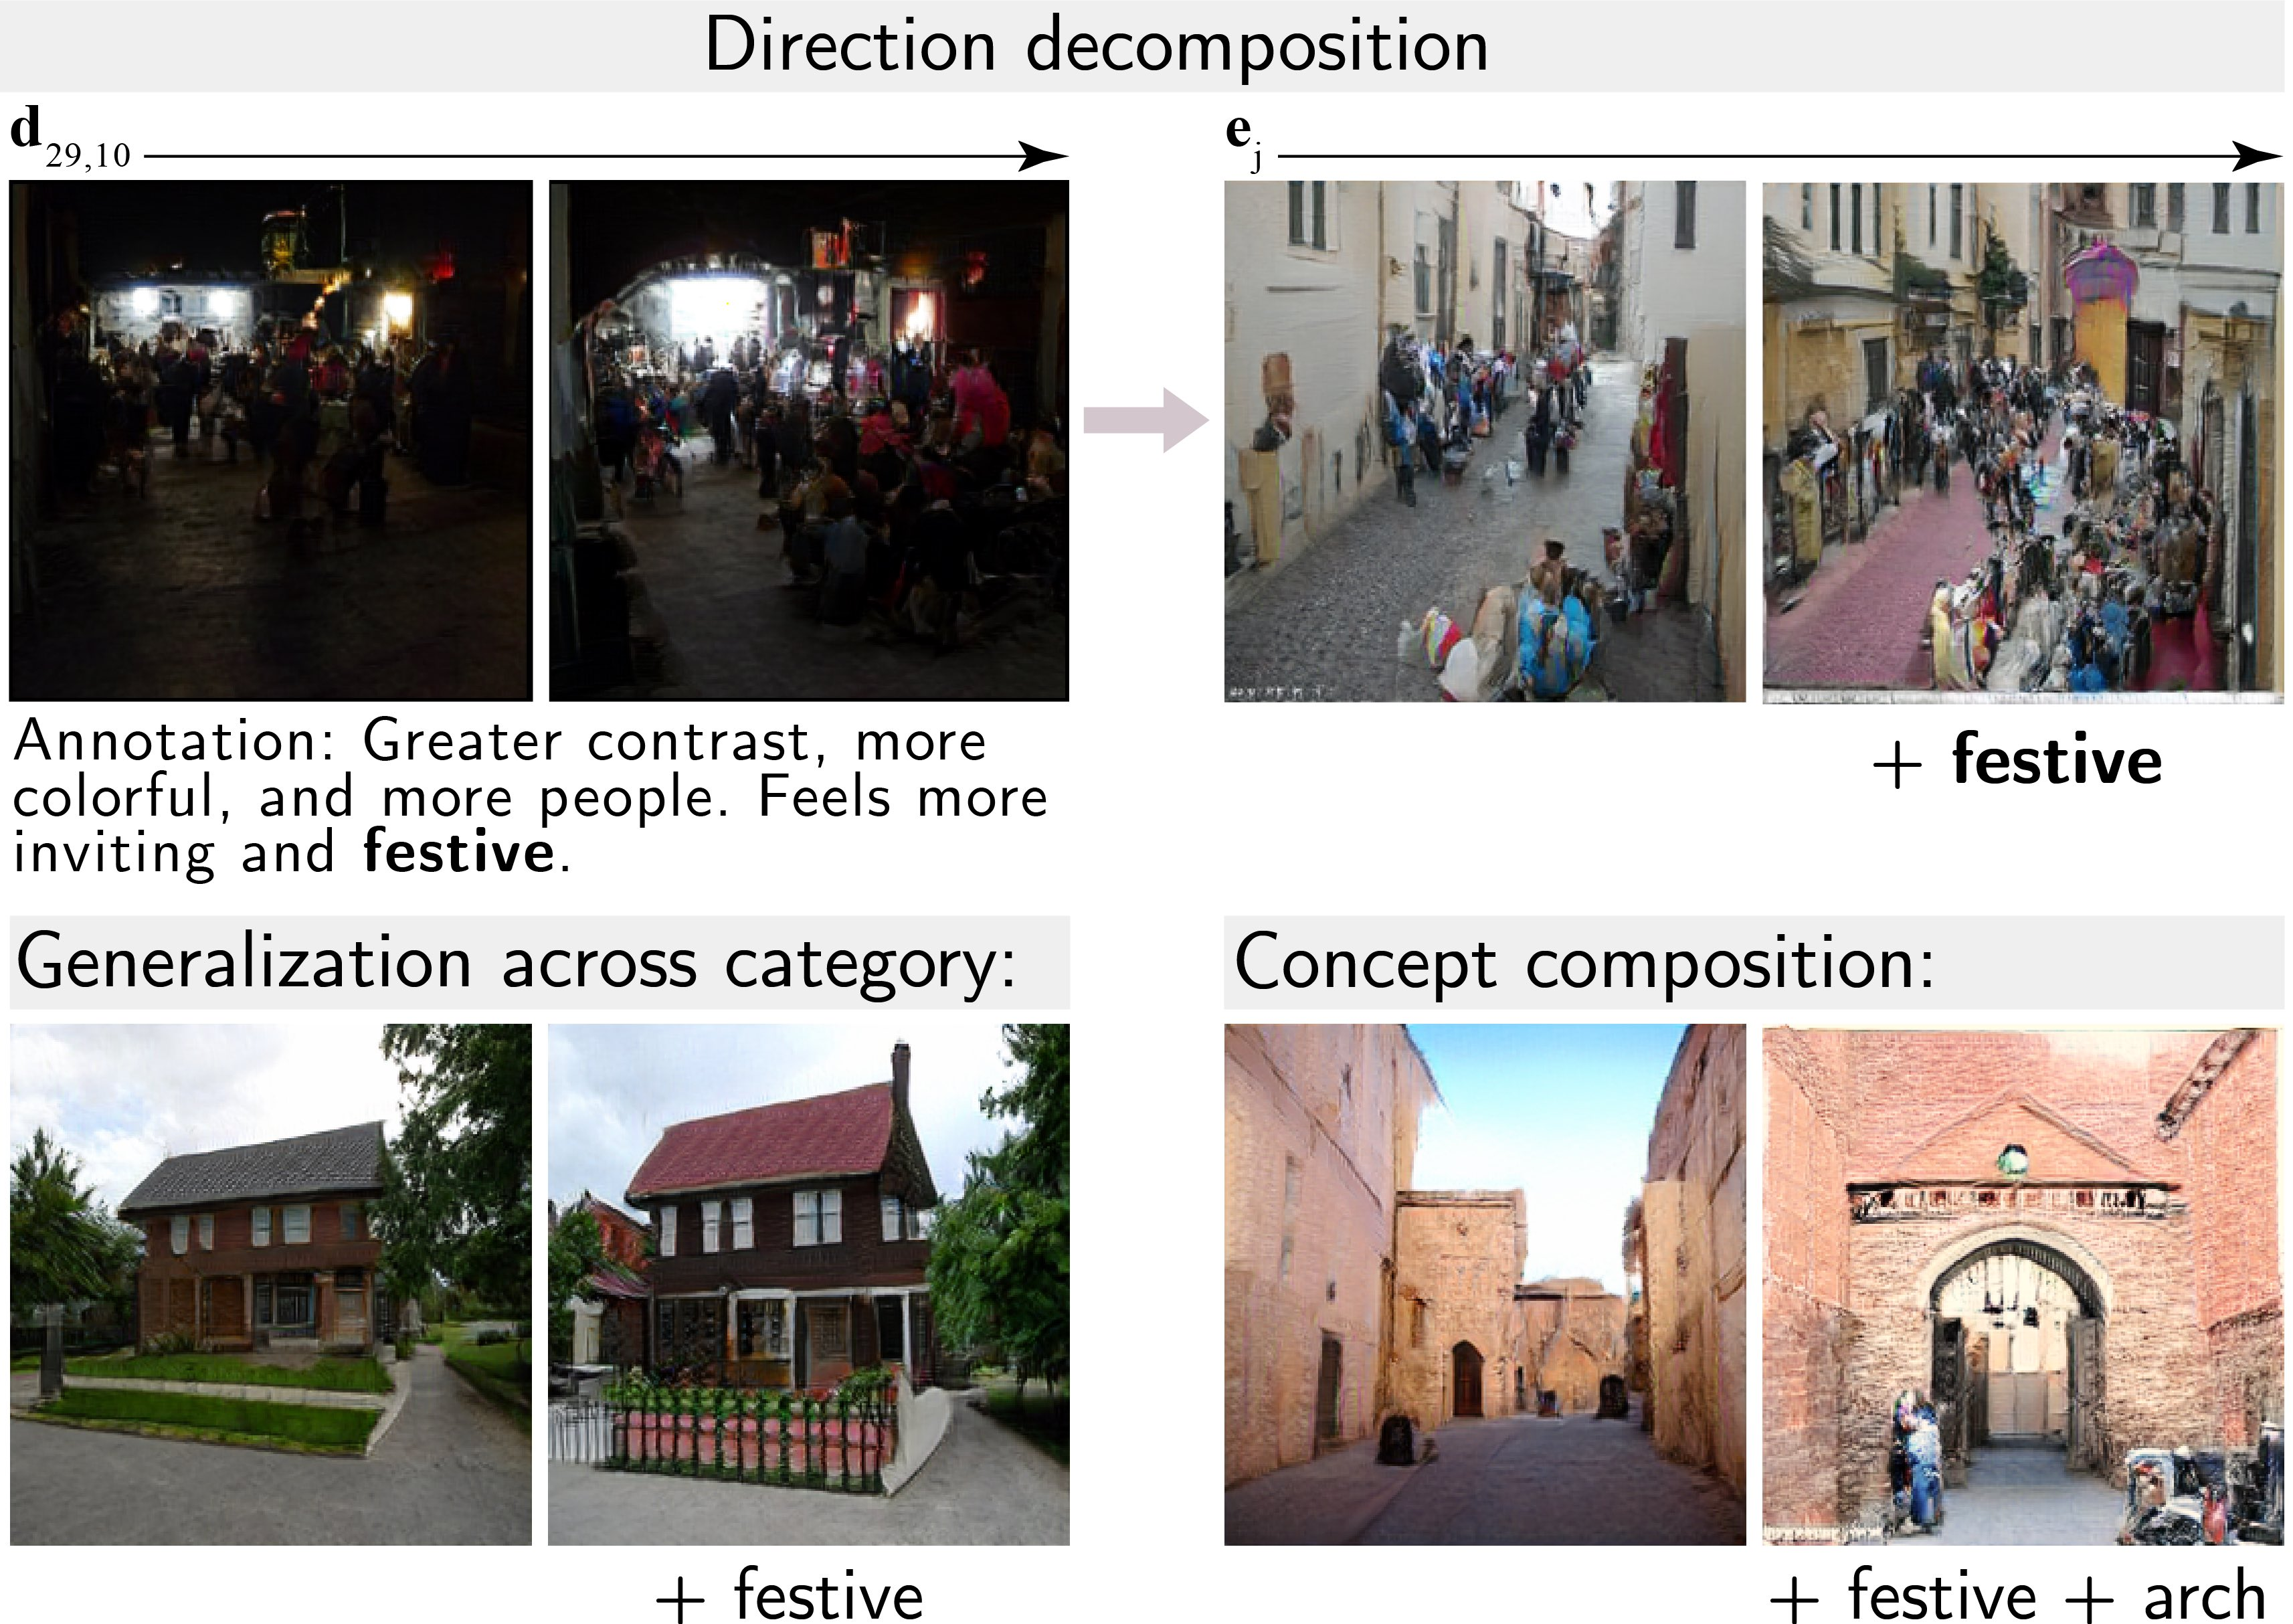 Building a visual concept vocabulary. First, we generate directions that preserve most of the structure and content in the image. Then we use human annotations to decompose them into directions that correspond to a single salient concept. Finally, we show the decomposed directions generalize across starting representations and input classes, and can be composed to construct compound directions.